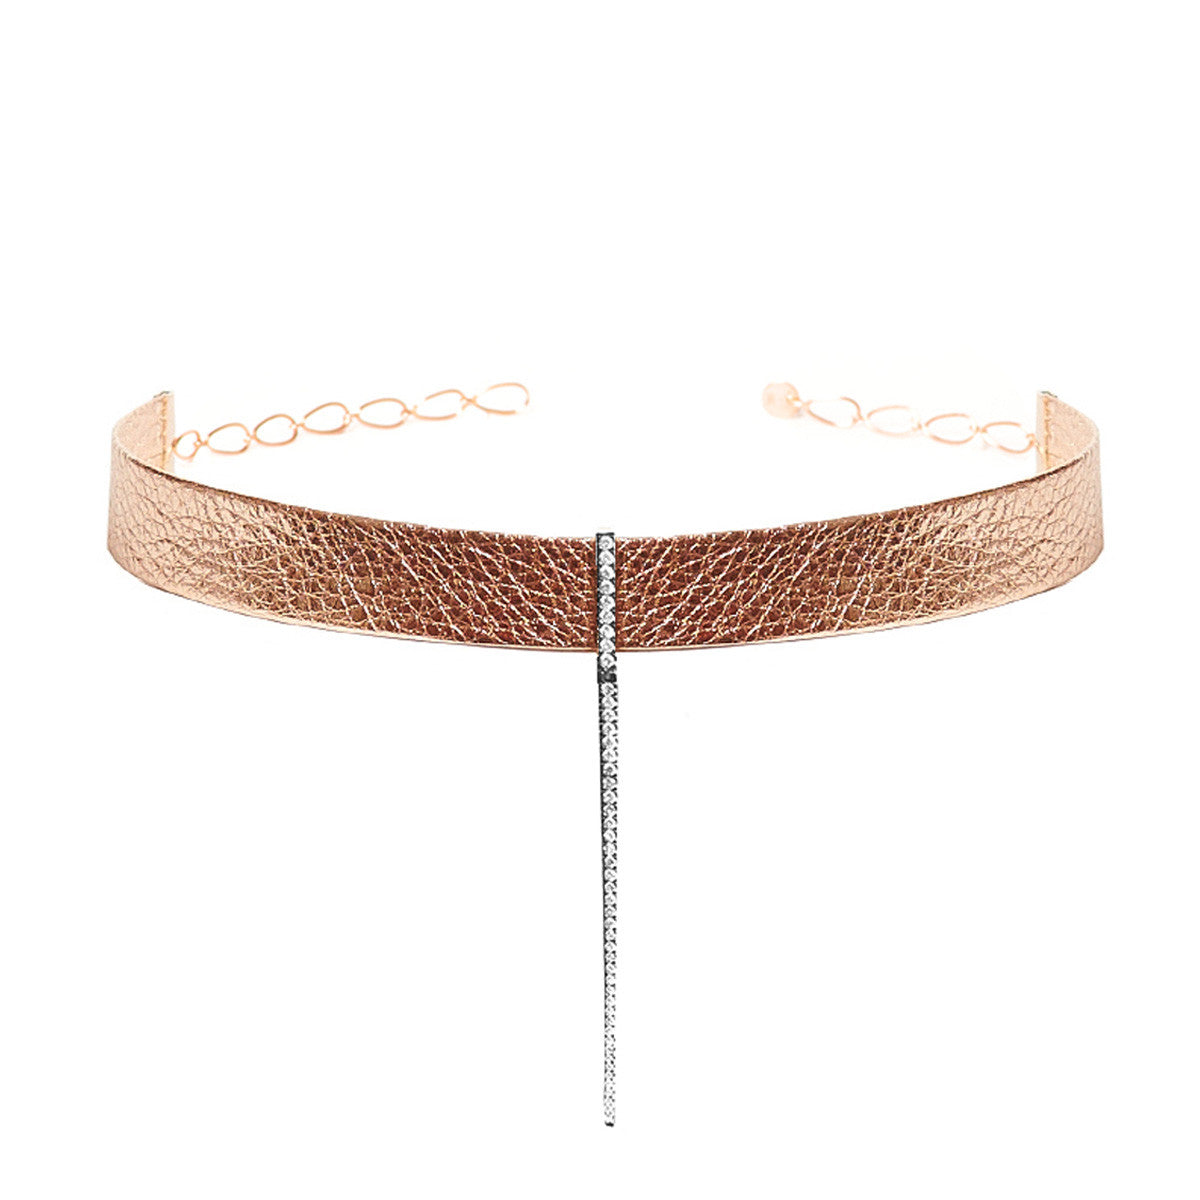 Diane Kordas Jewellery Rose Gold Leather Bar Choker 18kt gold